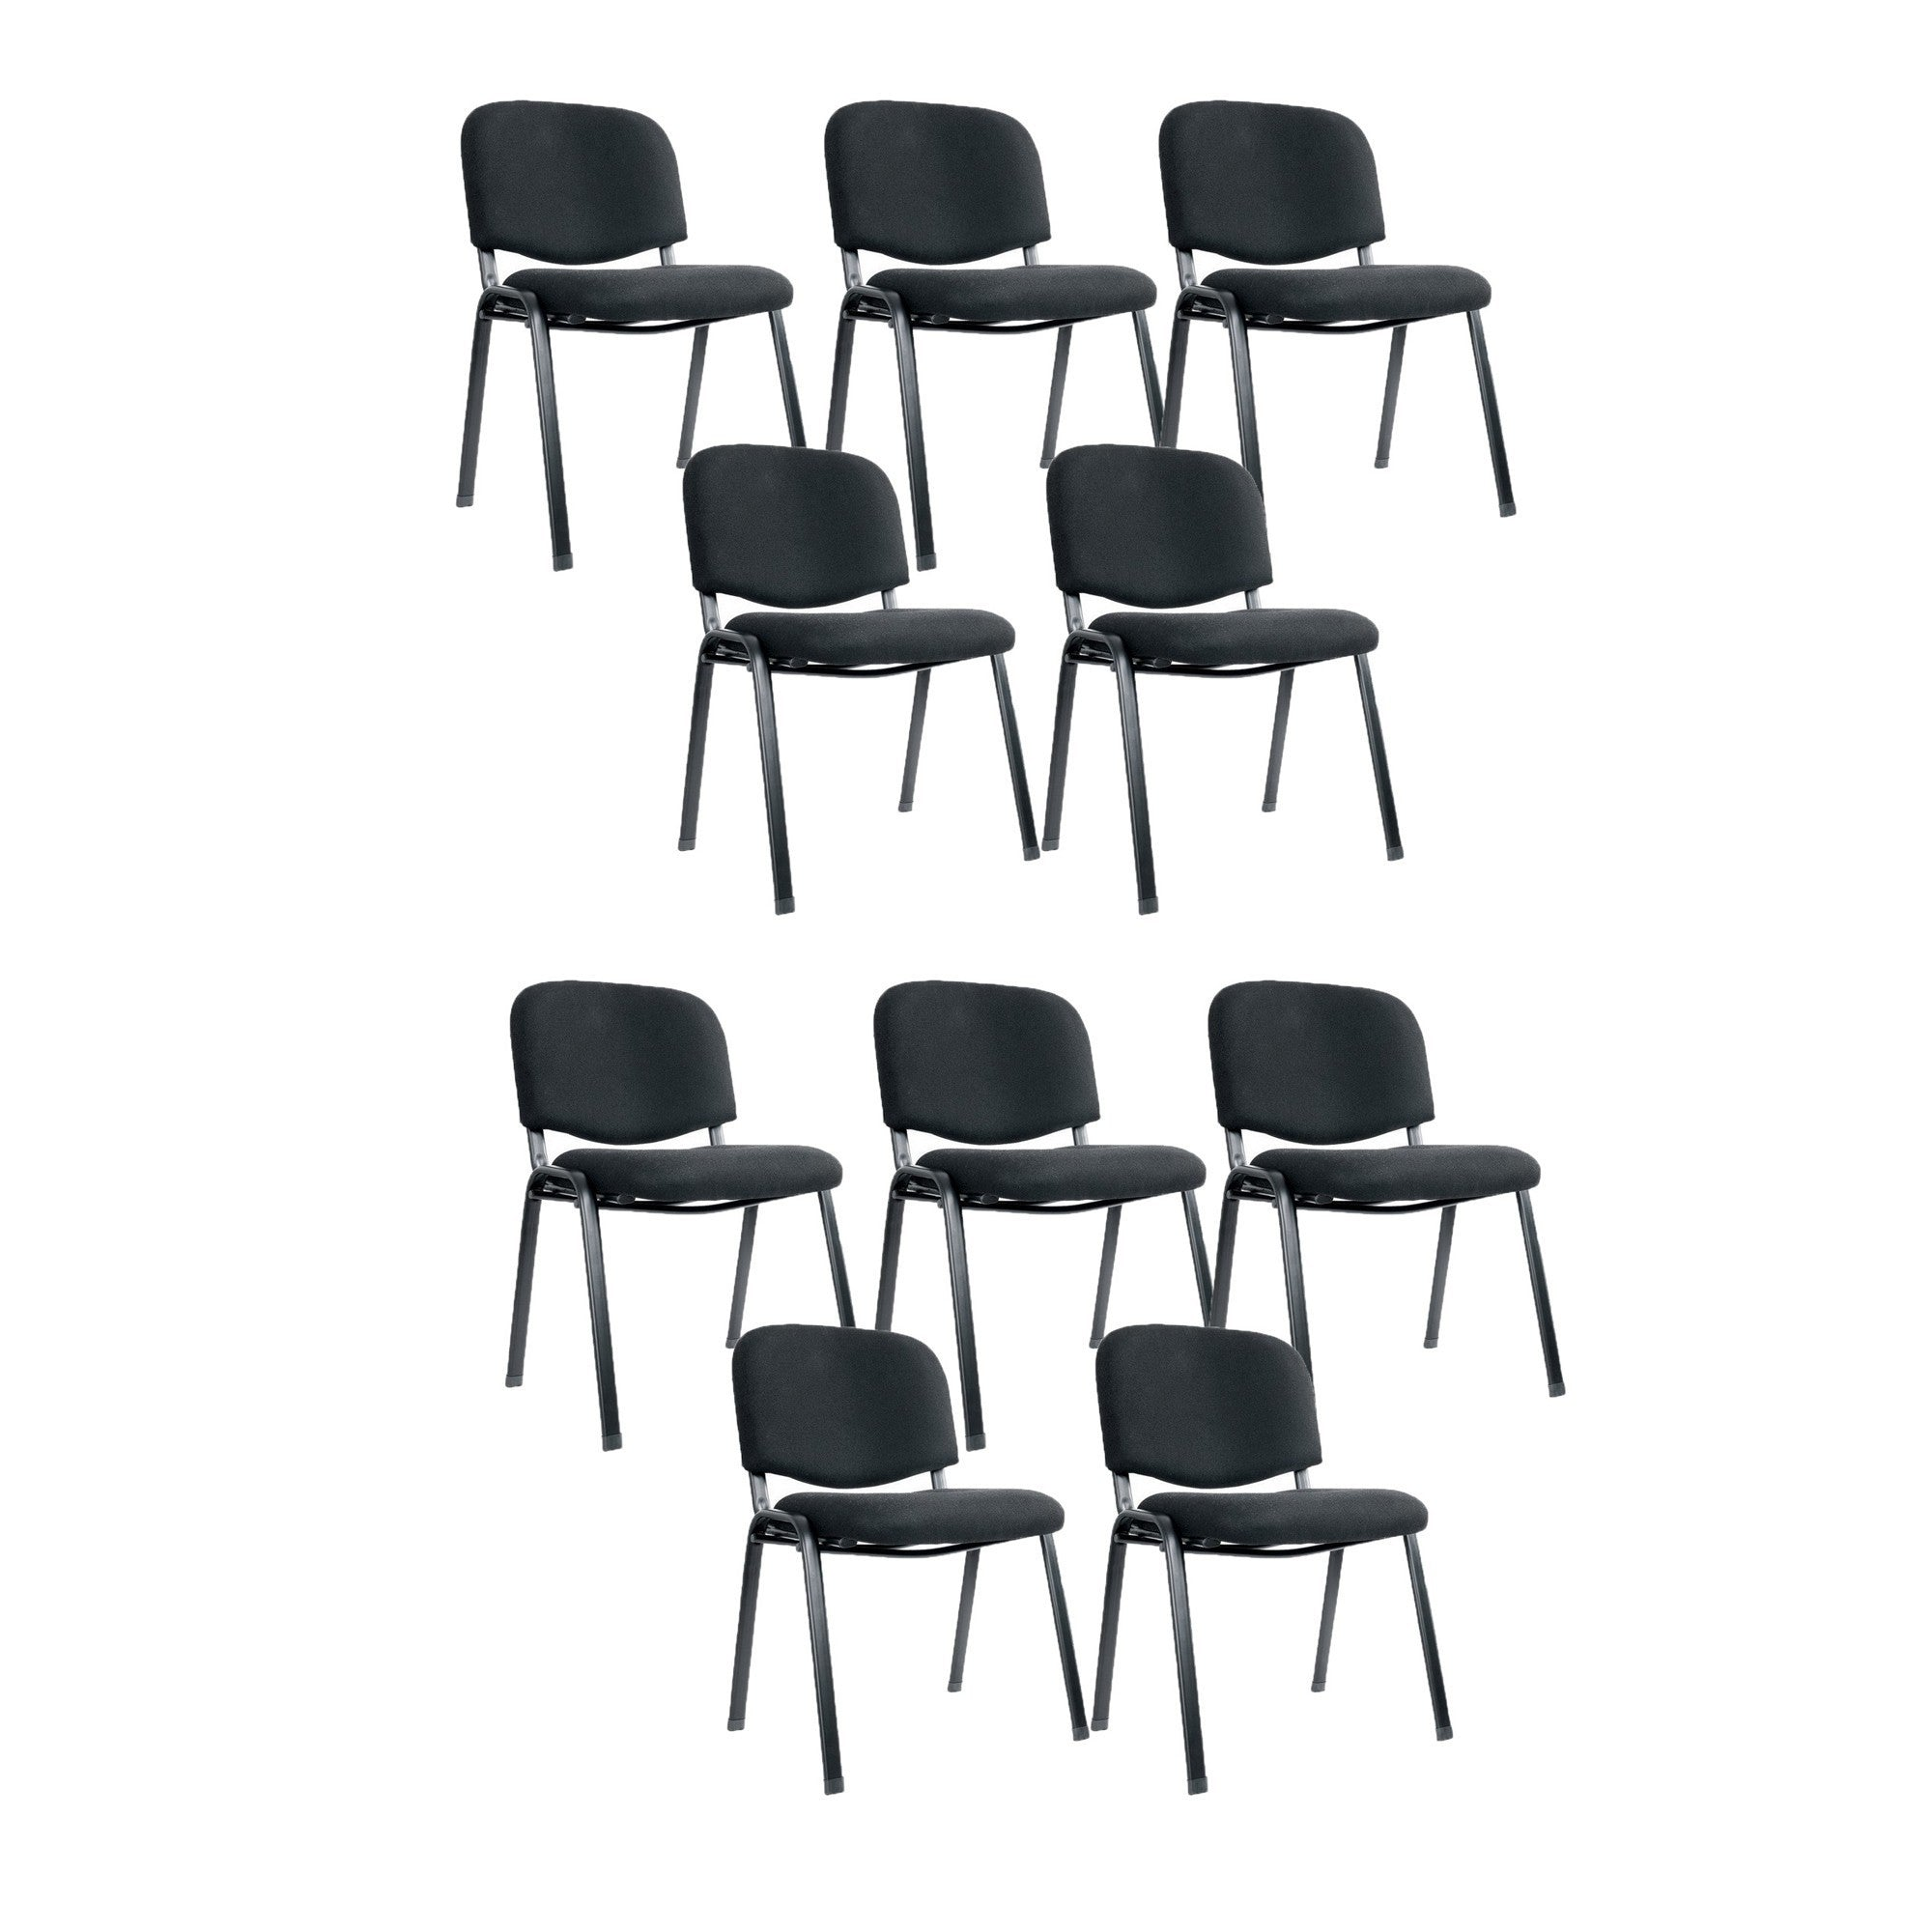 S14 Office Chair Set Of 10 Black Suchprice Singapore